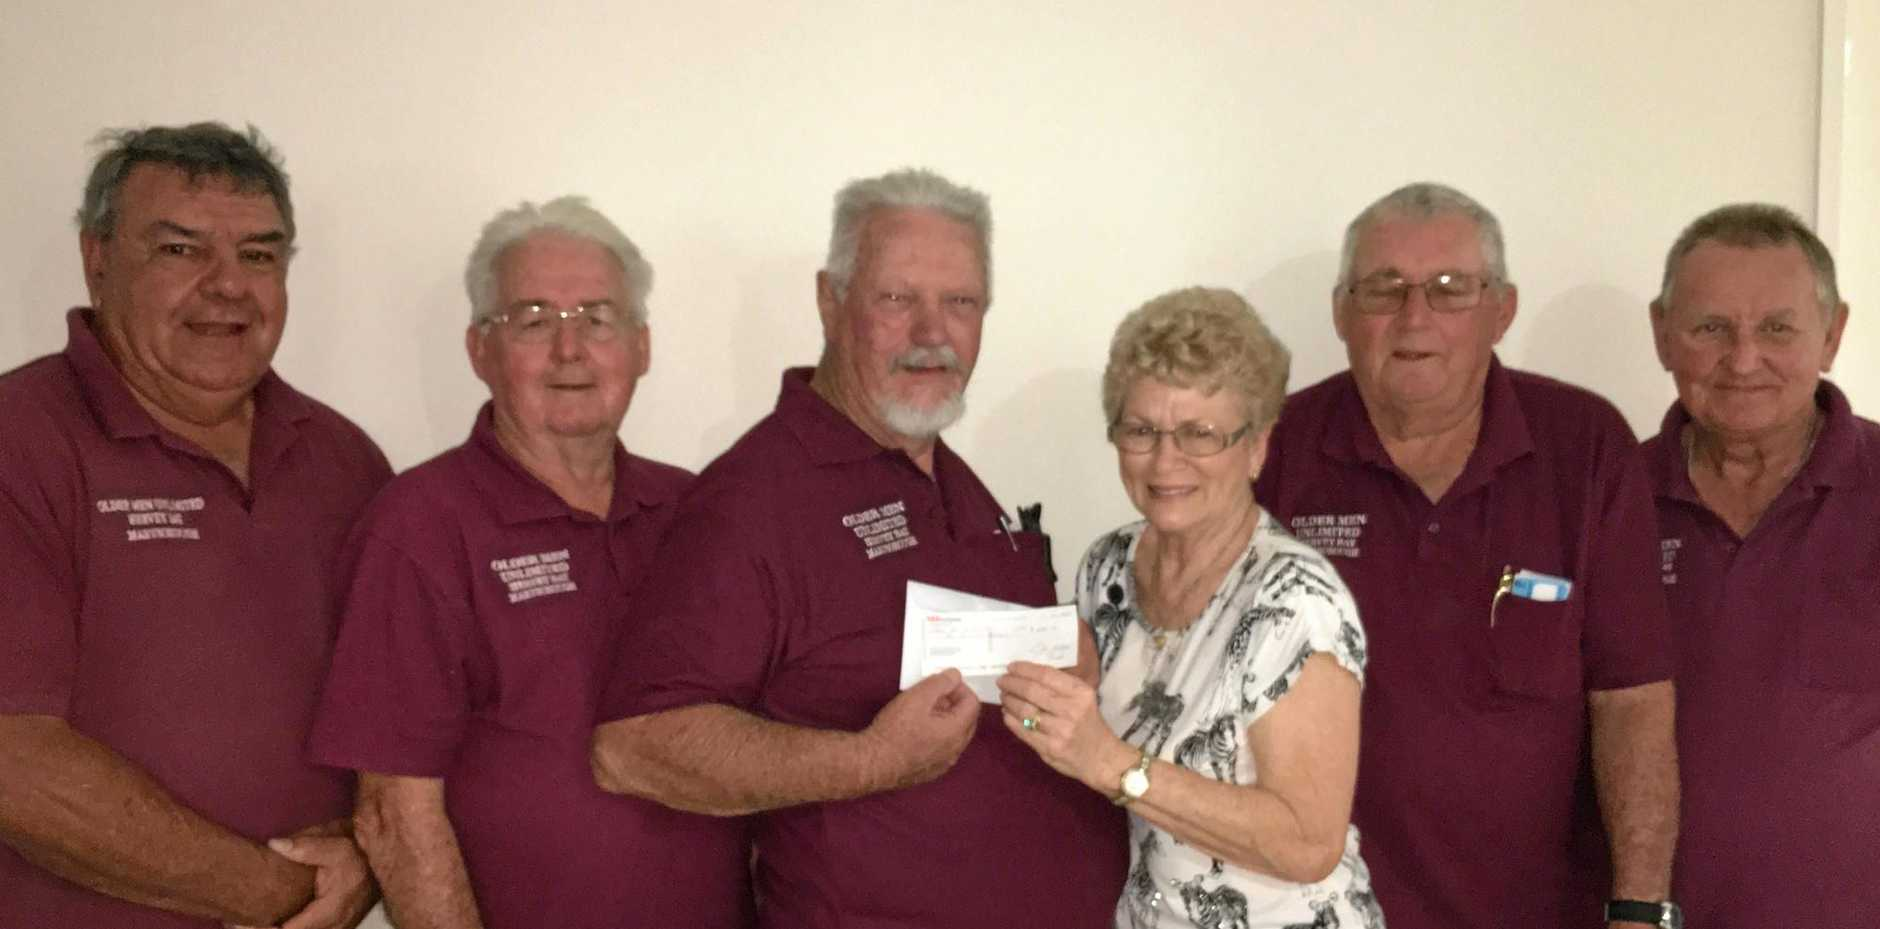 Quota Maryborough president Val Harvey presented $400 to the Older Men Unlimited Group members (from left) Glen Miller, Frank Grant, Theo Svensen, Val Harvey, Peter Sawtell and Ian Wies.